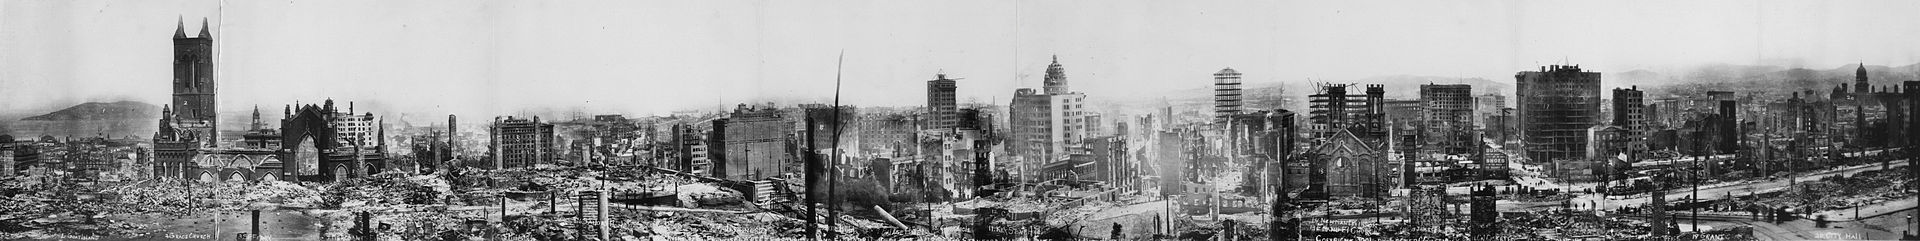 San Francisco panorama after the earthquake of 1906. Lester C. Guernsey - Photo by Lester C. Guernsey Via Library of Congress Panoramic collection